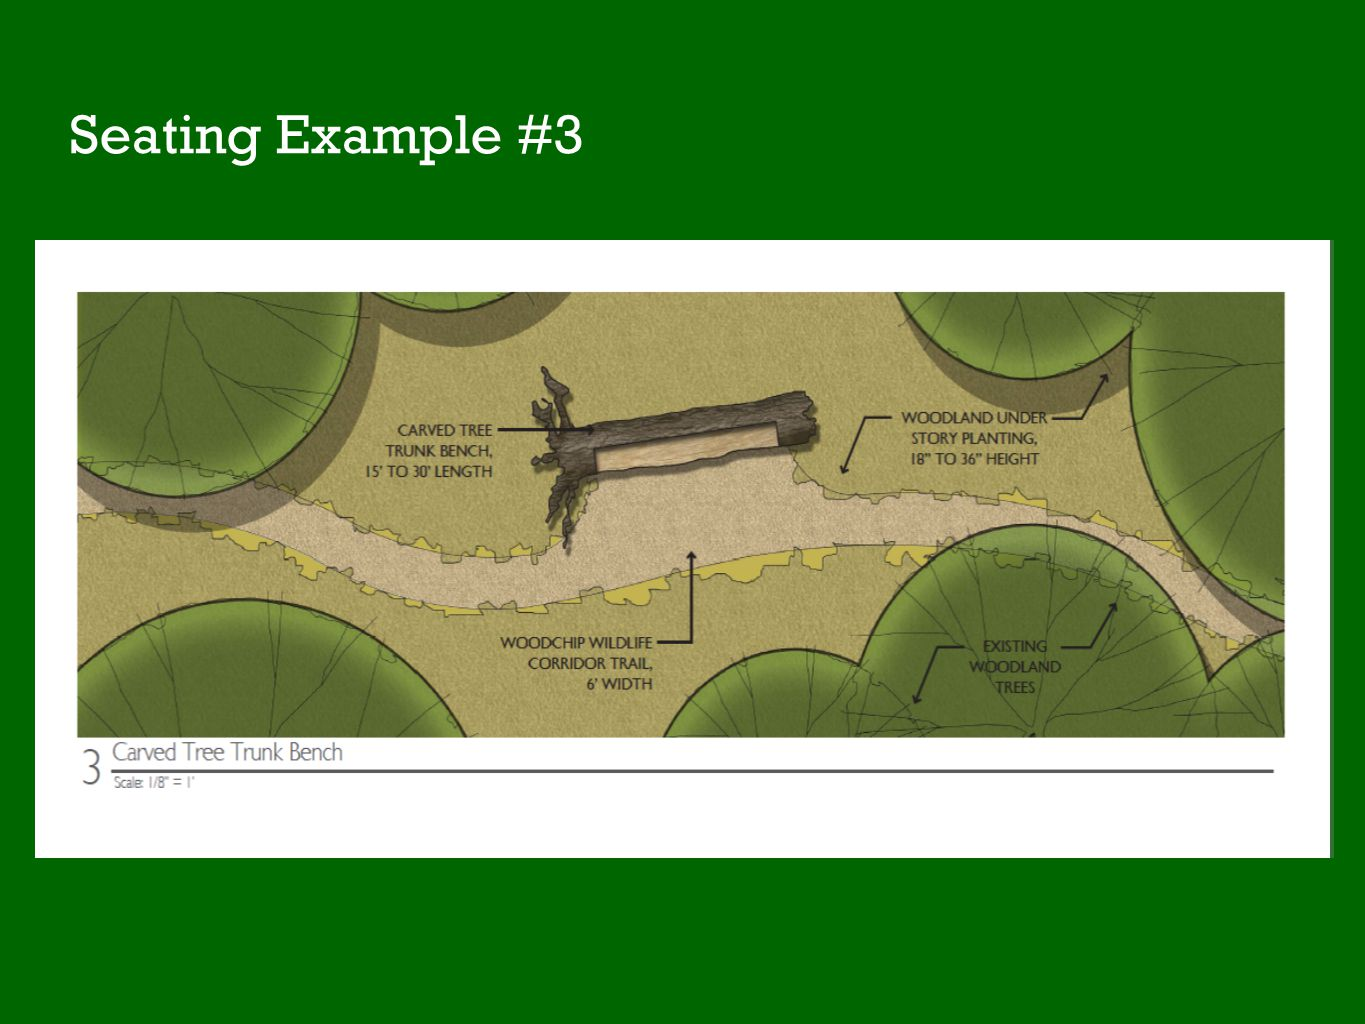 Seating Example #3